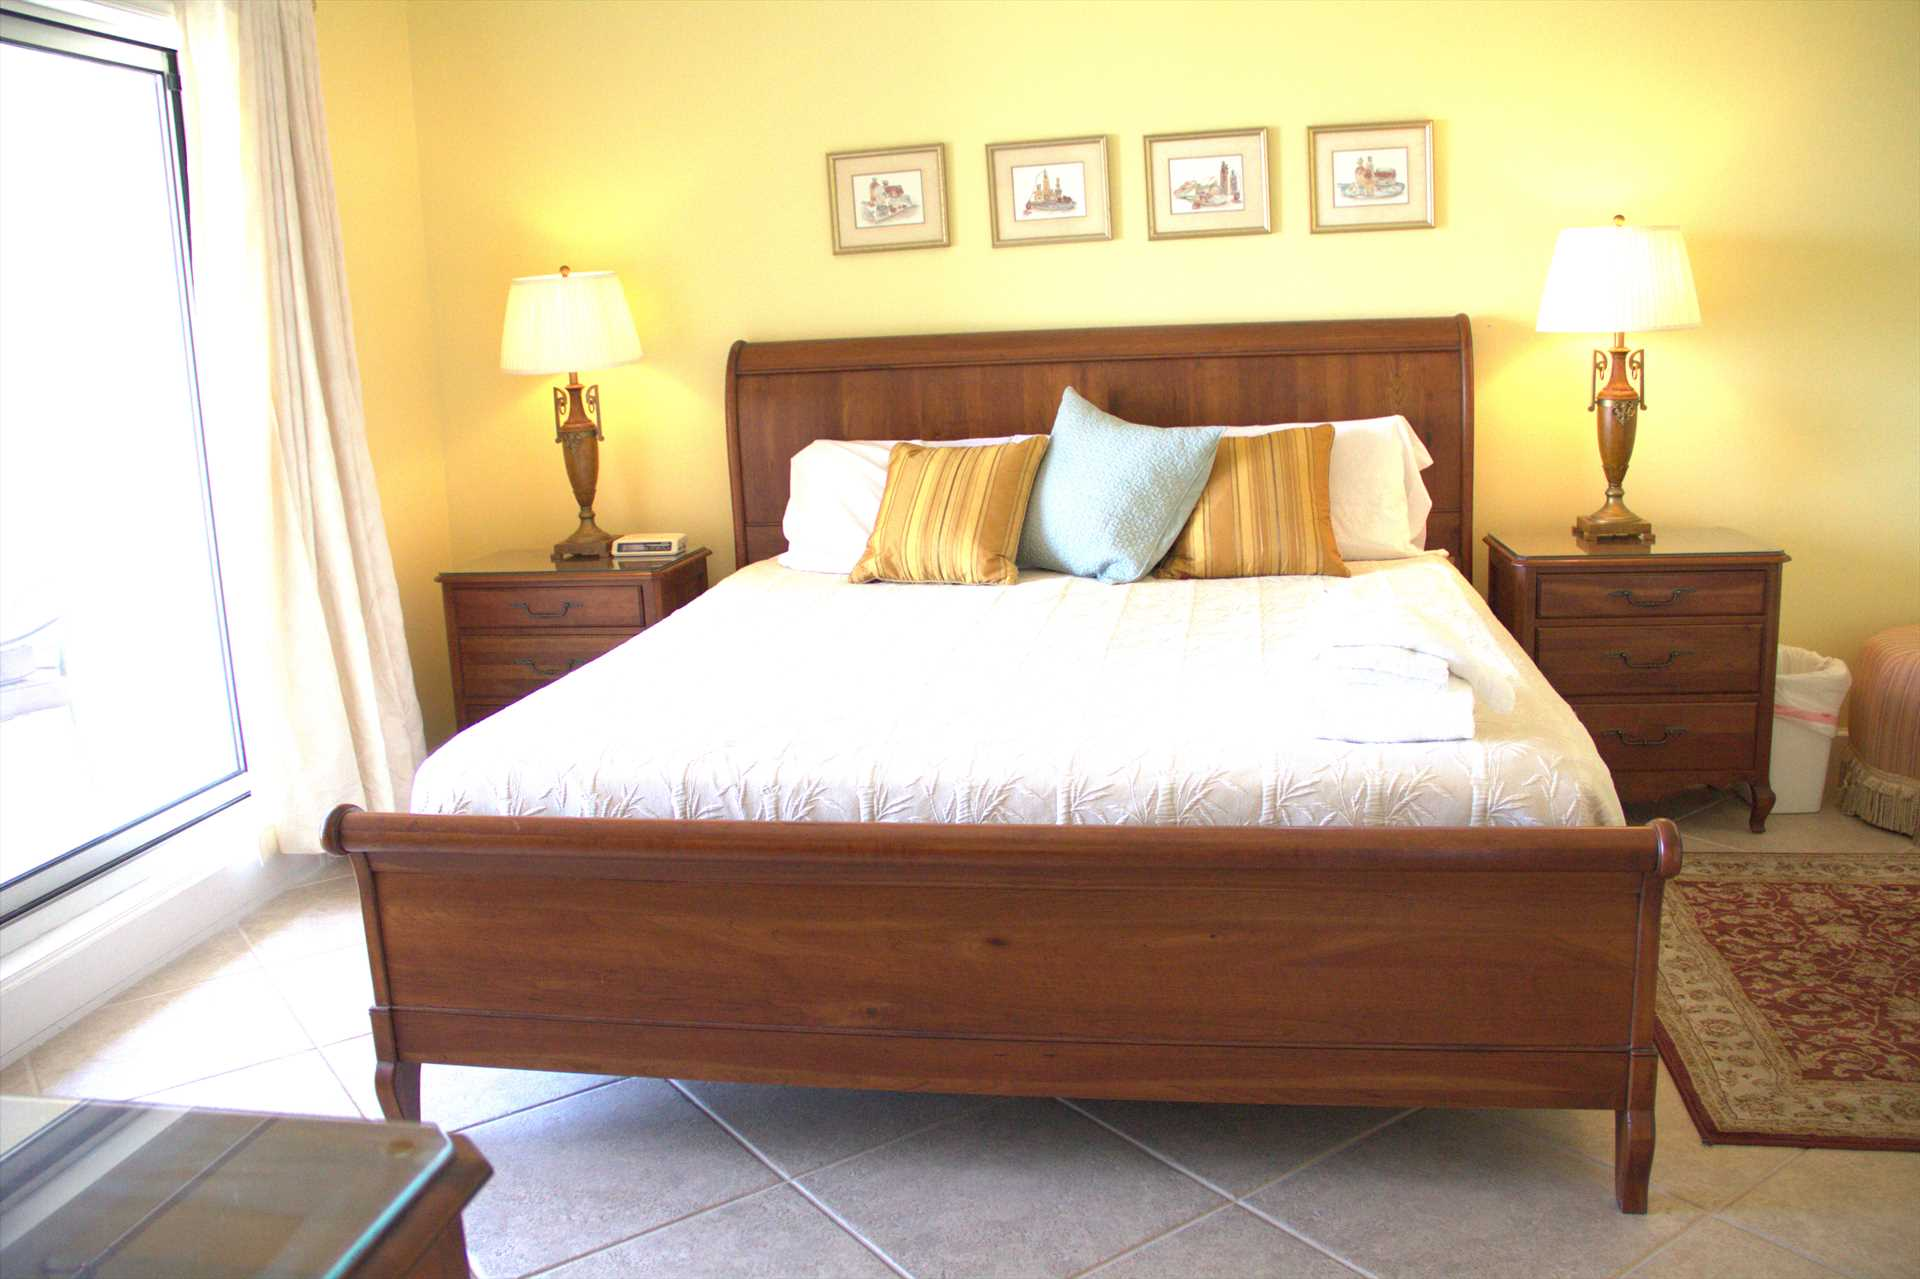 The bed in the master bedroom is a king